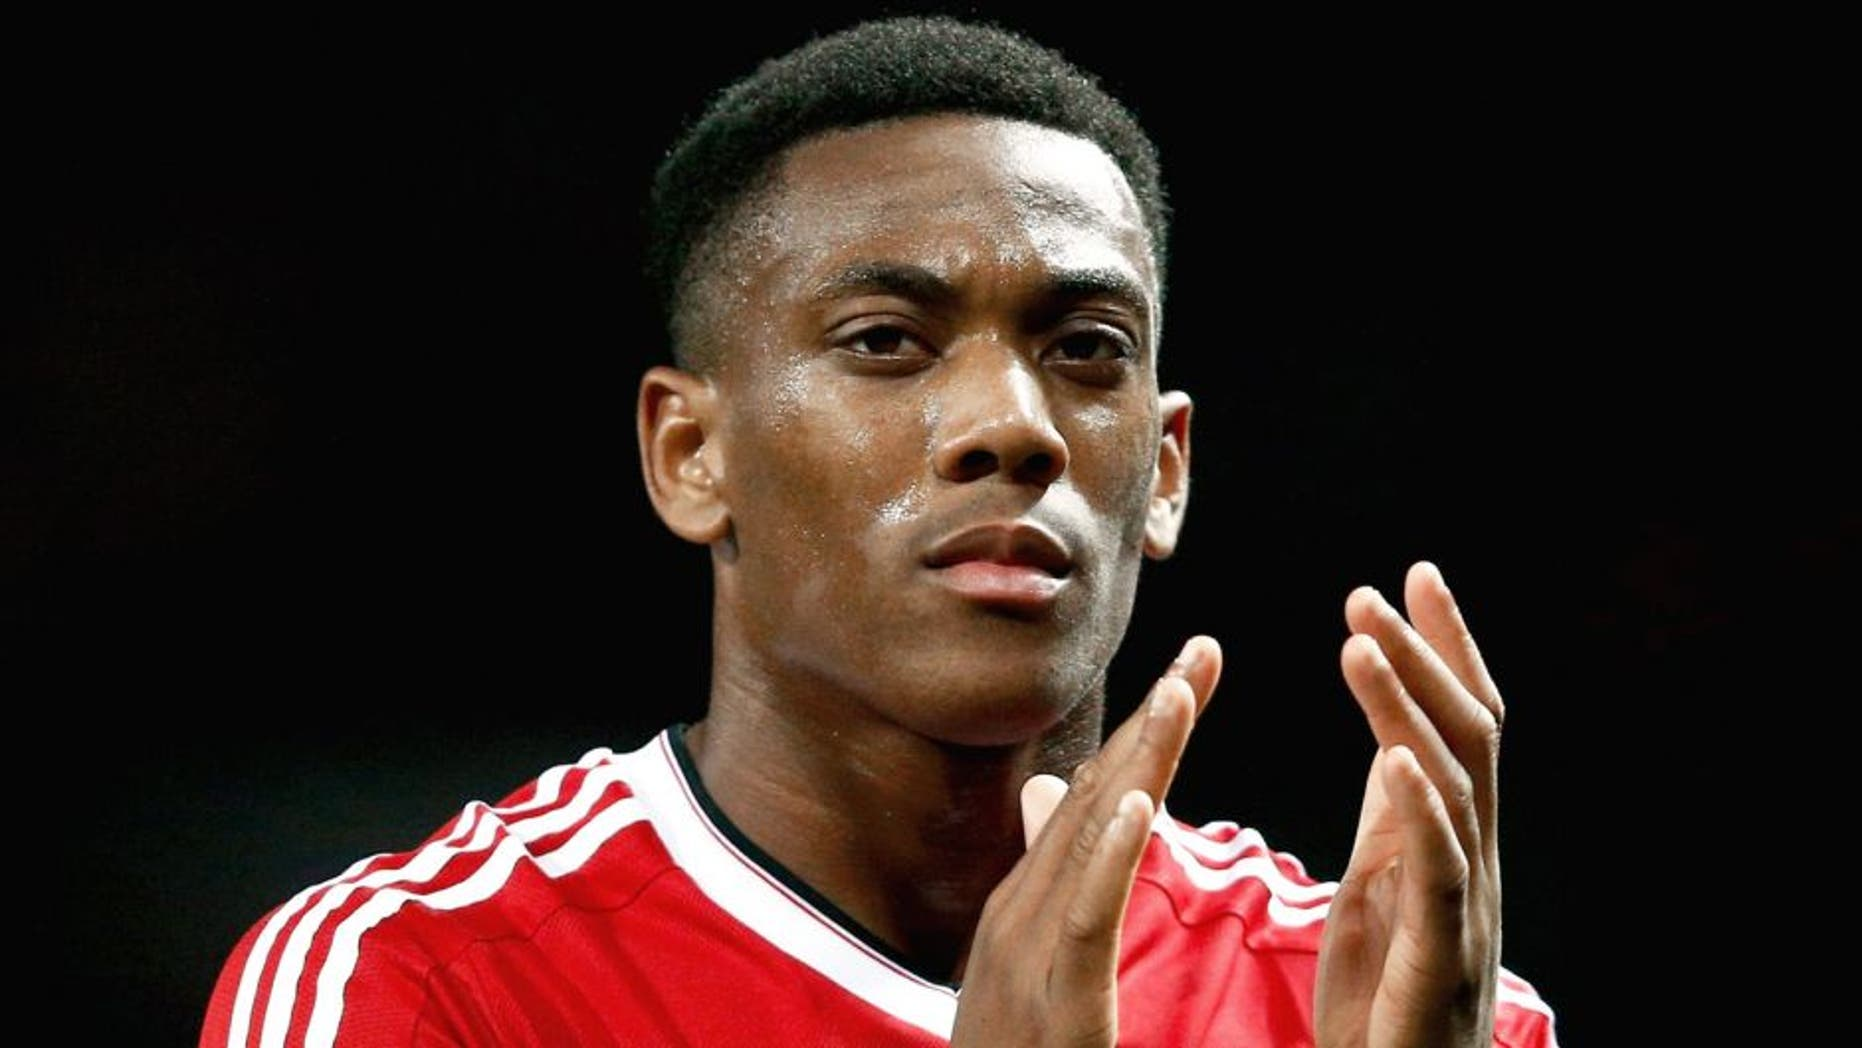 MANCHESTER, ENGLAND - SEPTEMBER 30: Anthony Martial of Manchester United applauds the crowd after victory in the UEFA Champions League Group B match between Manchester United FC and VfL Wolfsburg at Old Trafford on September 30, 2015 in Manchester, United Kingdom. (Photo by Dean Mouhtaropoulos/Getty Images)